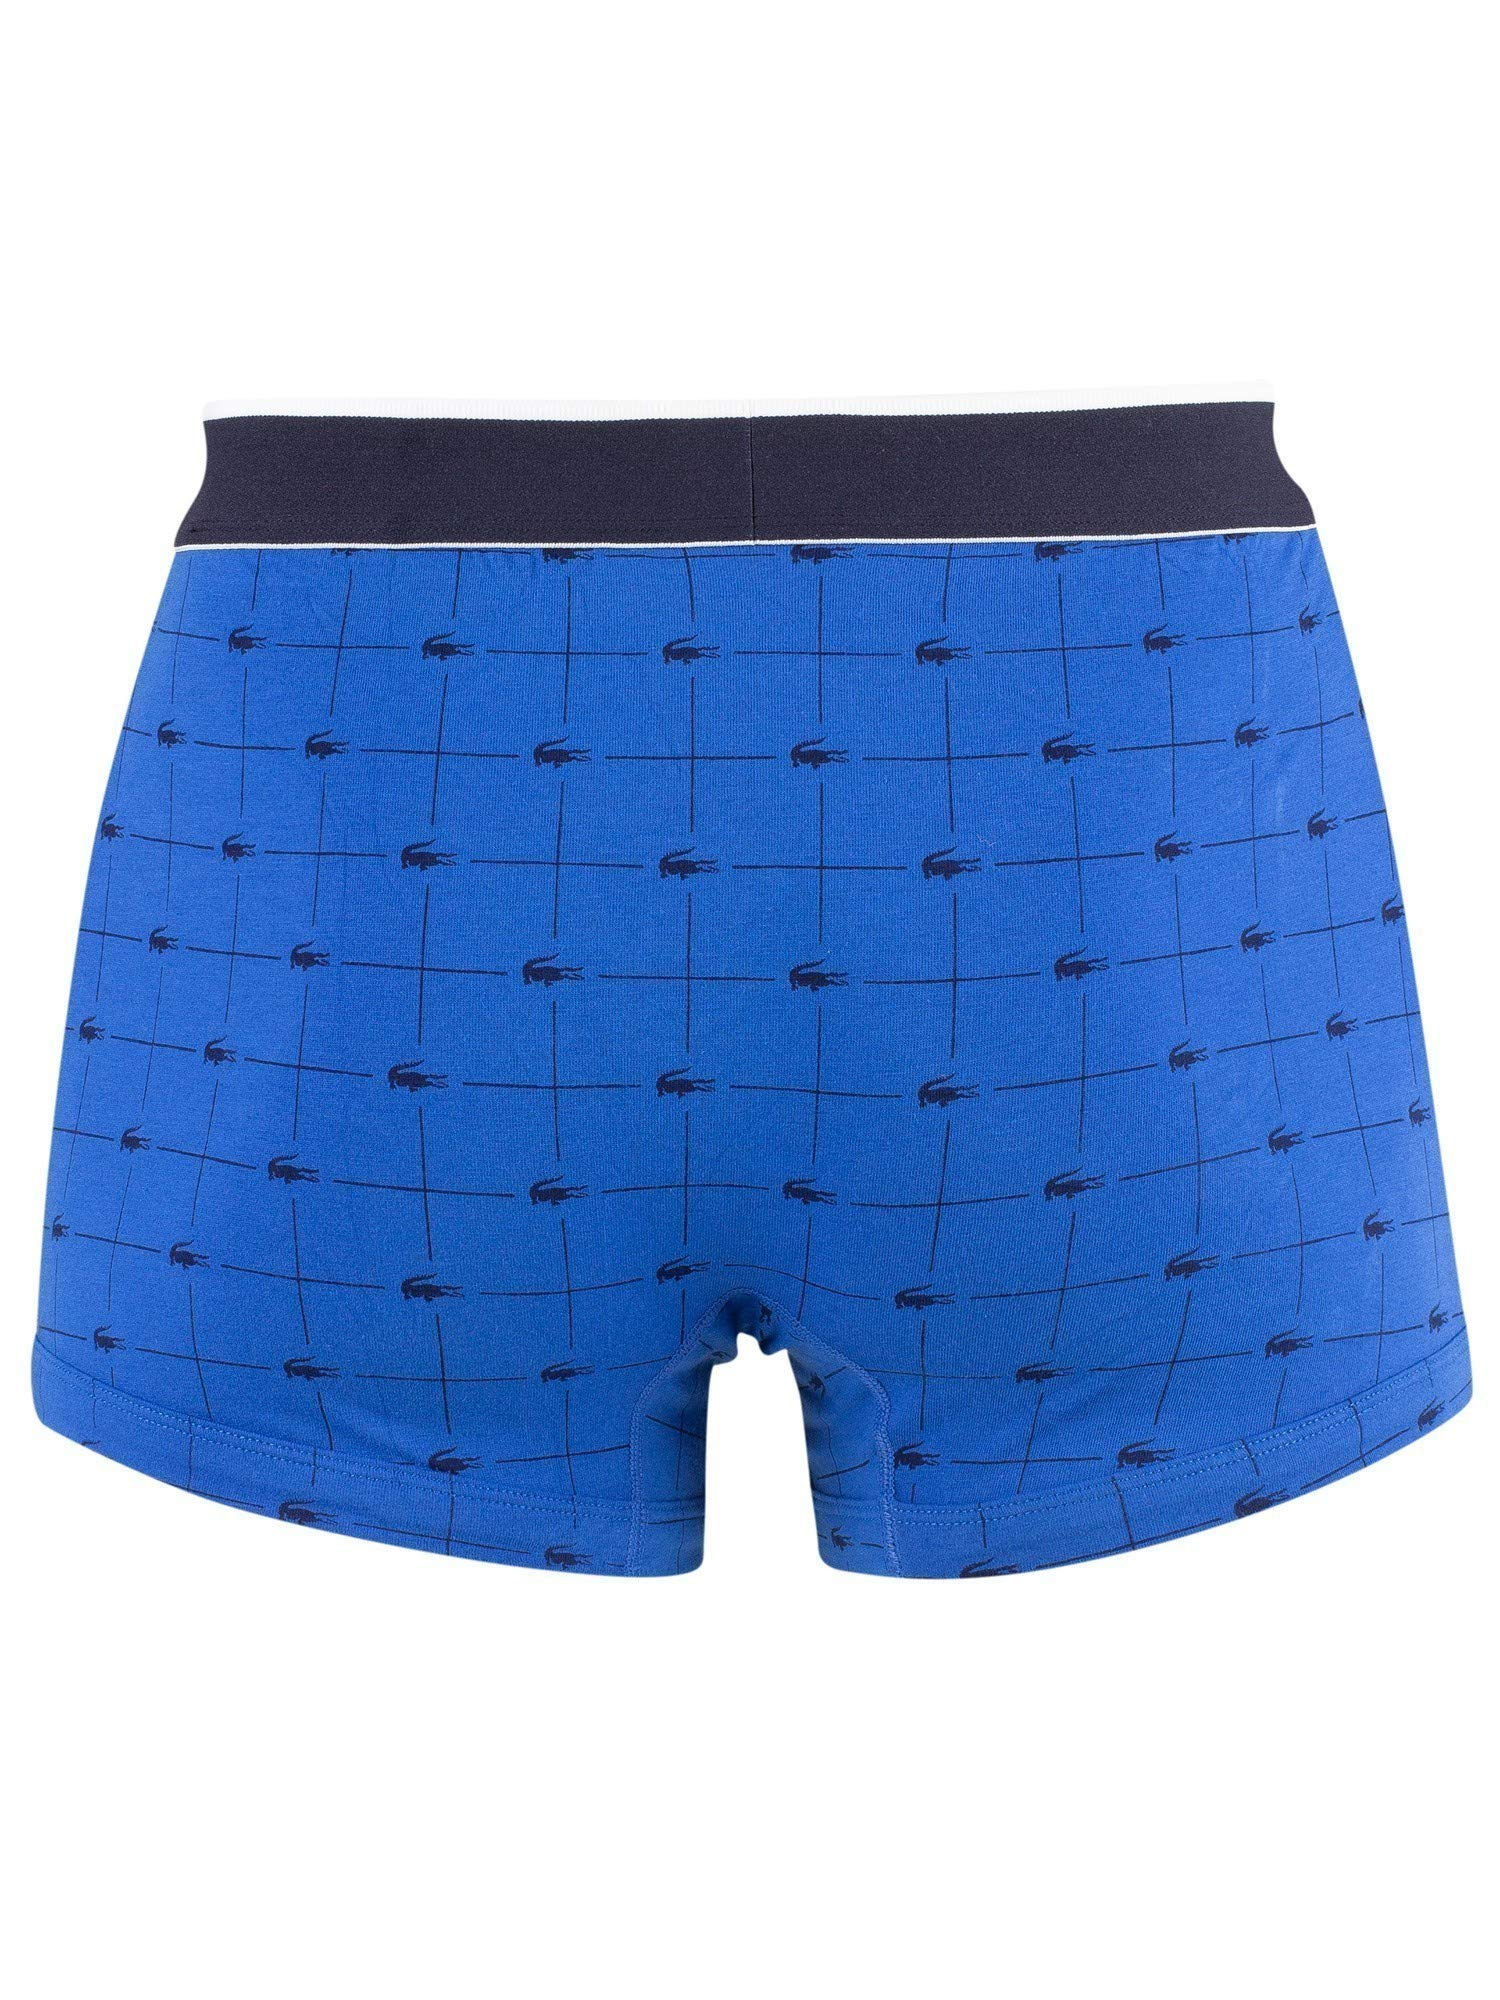 Lacoste – Colores – 3er Pack Signature Trunks – Calzoncillos Bóxer – Azul Marino